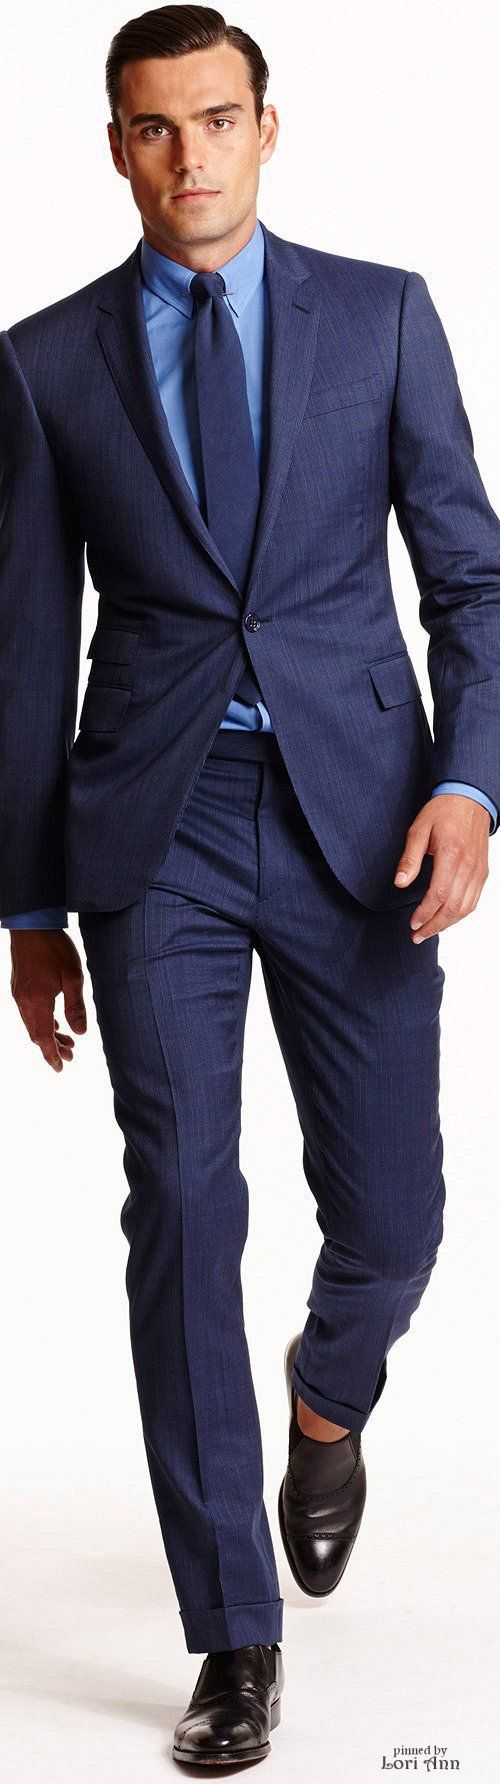 843 best images about suit tie shirt combos on pinterest Blue suit shirt tie combinations